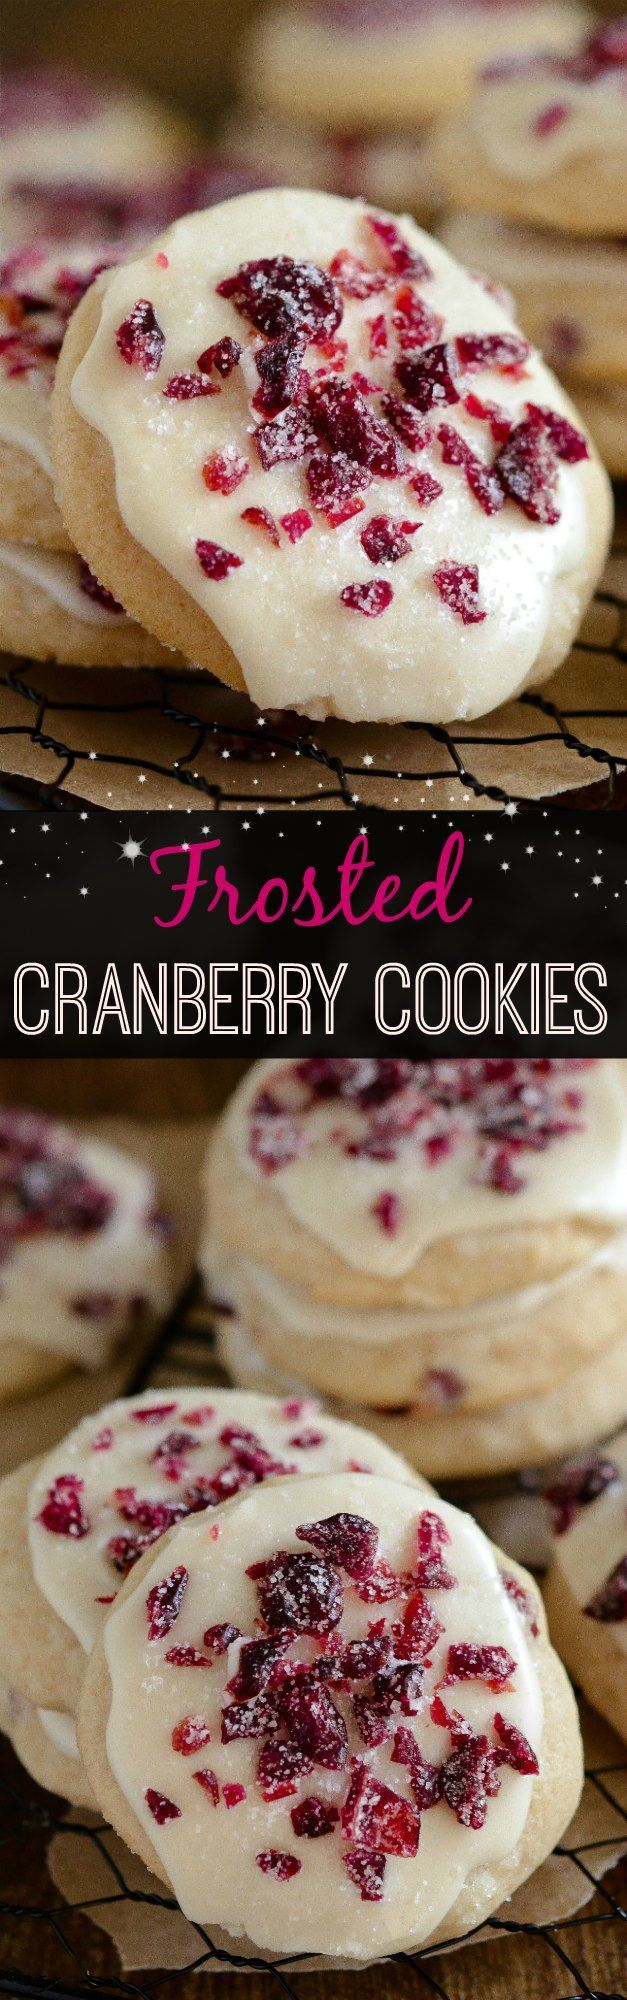 Frosted Cranberry Cookies - sweet soft cranberry shortbread cookies with vanilla... -